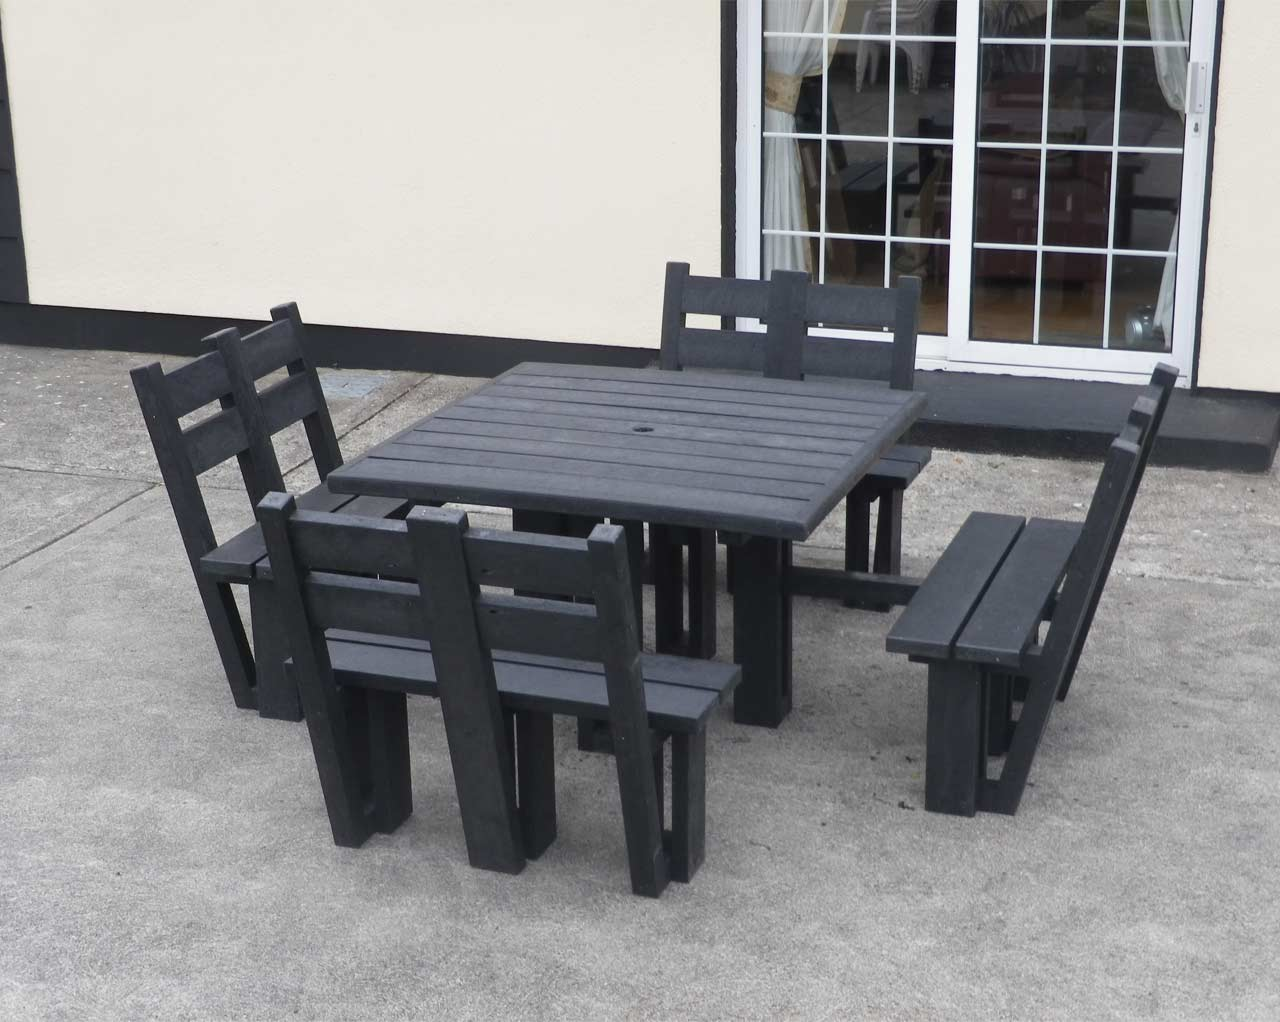 8 Seater Picnic Table With Back Murray S Recycled Plastic